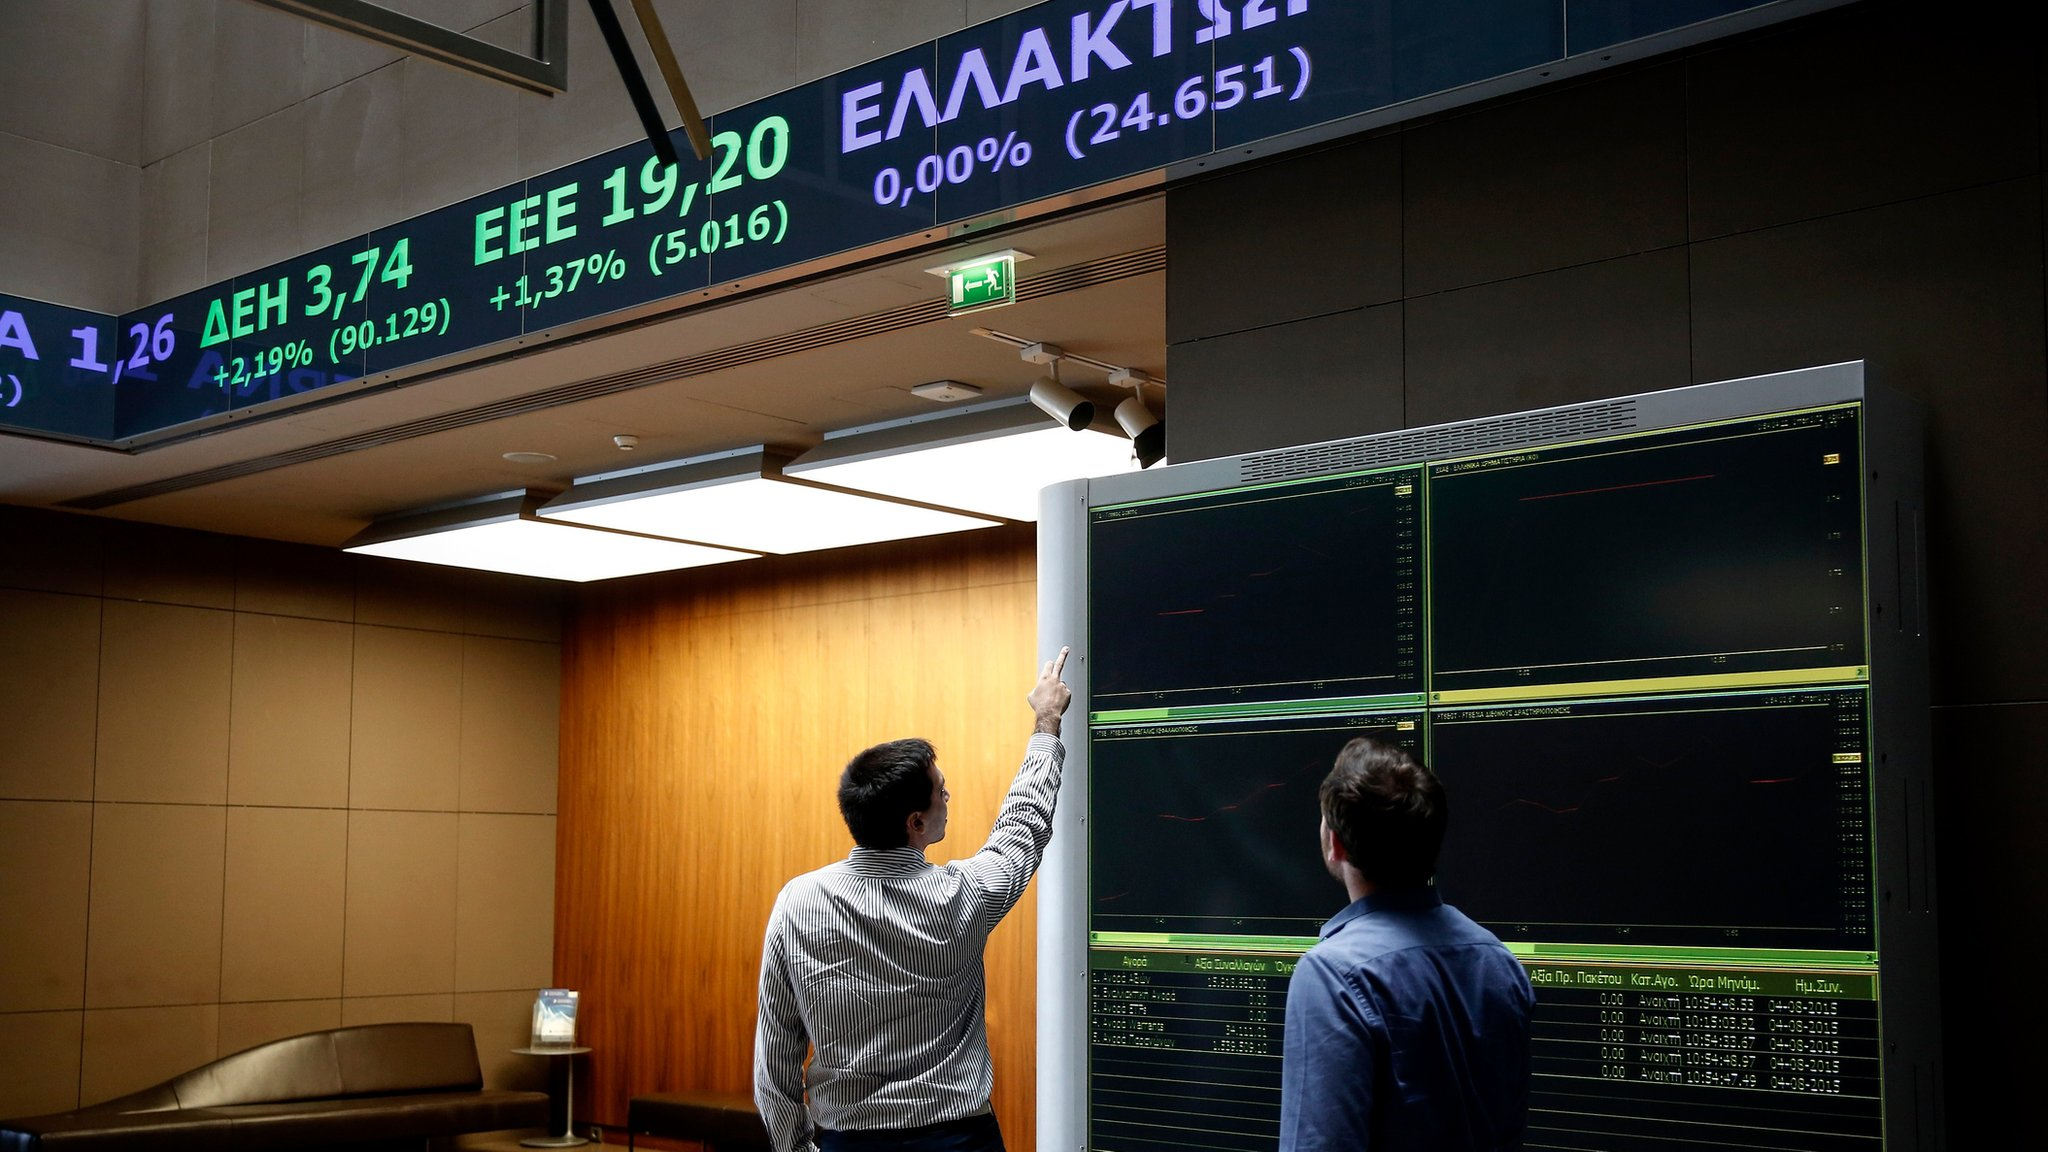 Shares in Greek banks fall for a second day in Athens, but non-financial shares fare better.